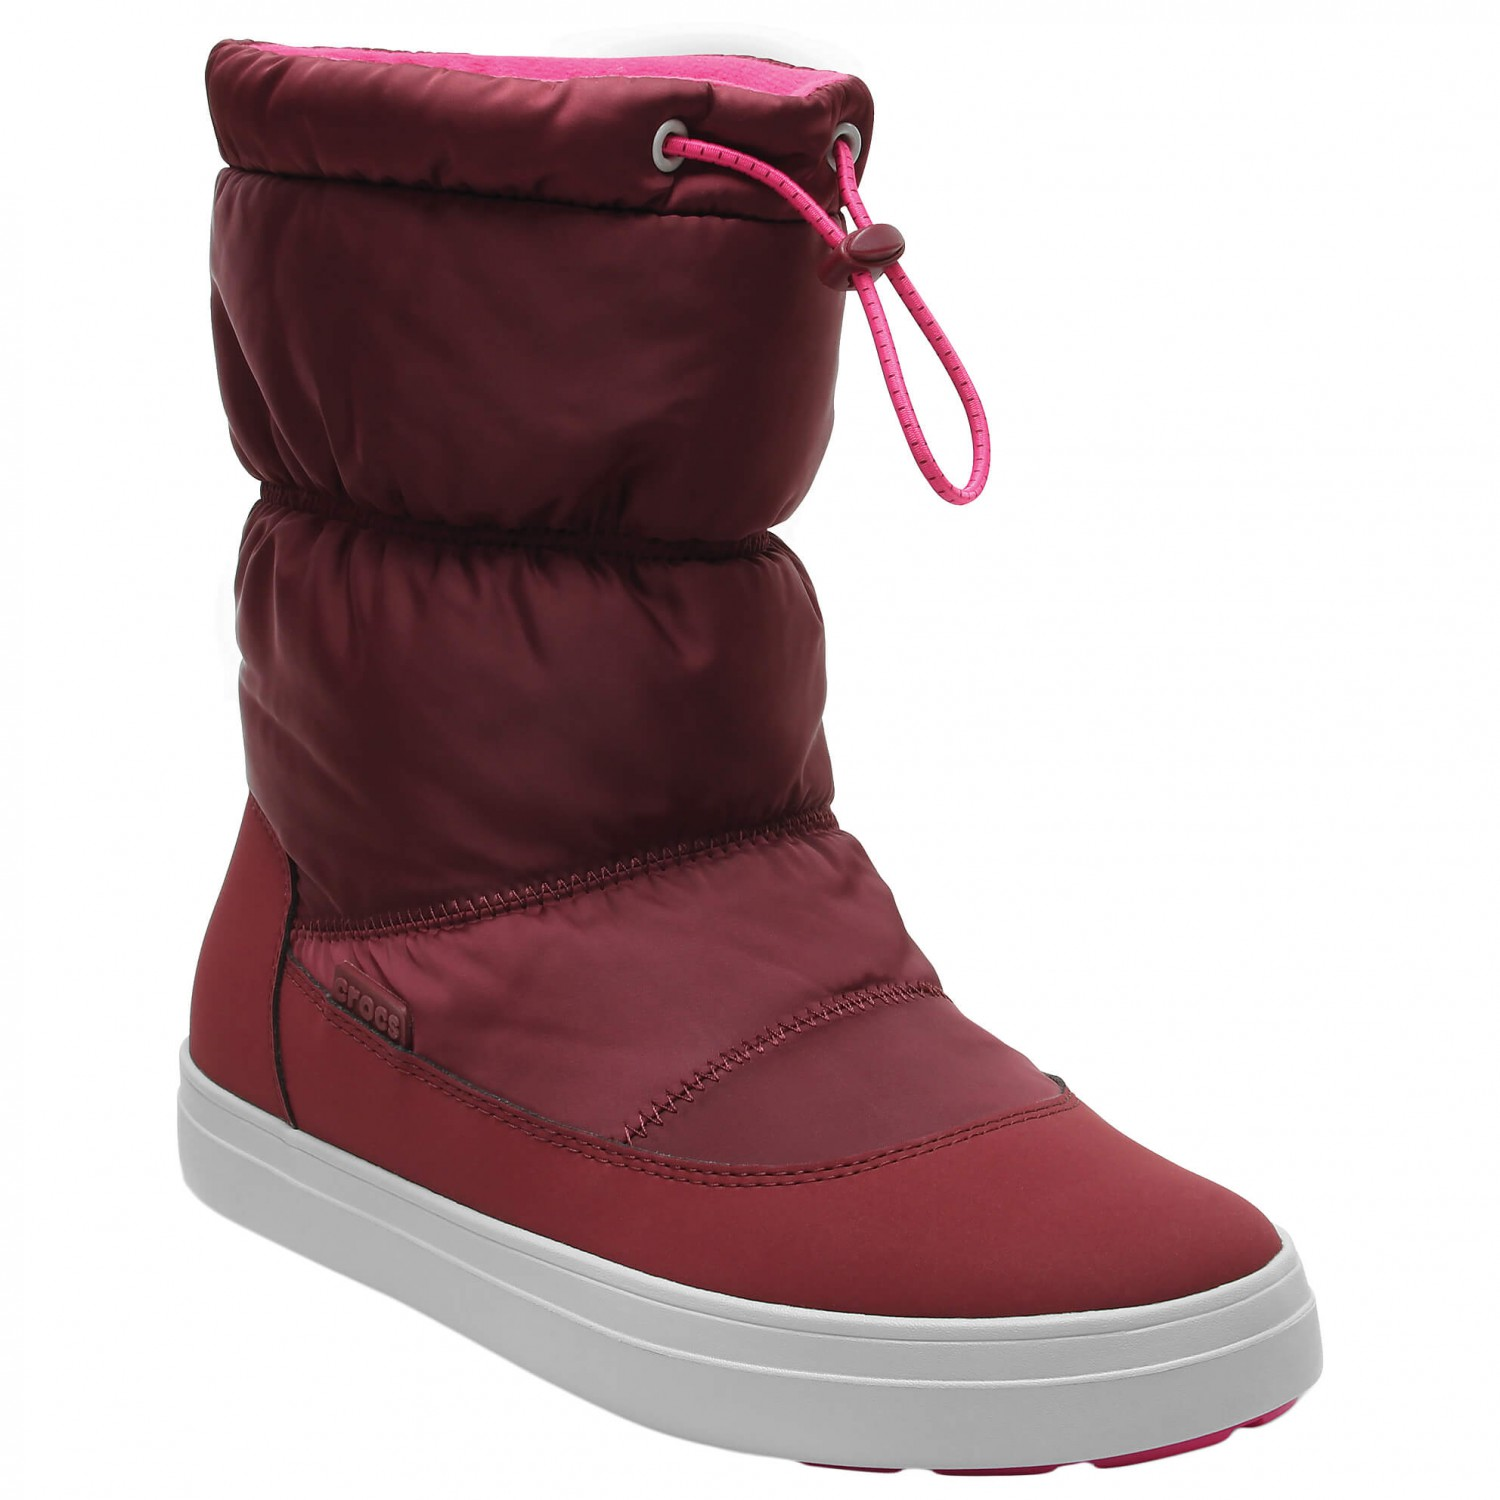 c3ee9a6f76c4b Crocs - Women s LodgePoint Shiny Pull-On - Winter boots ...